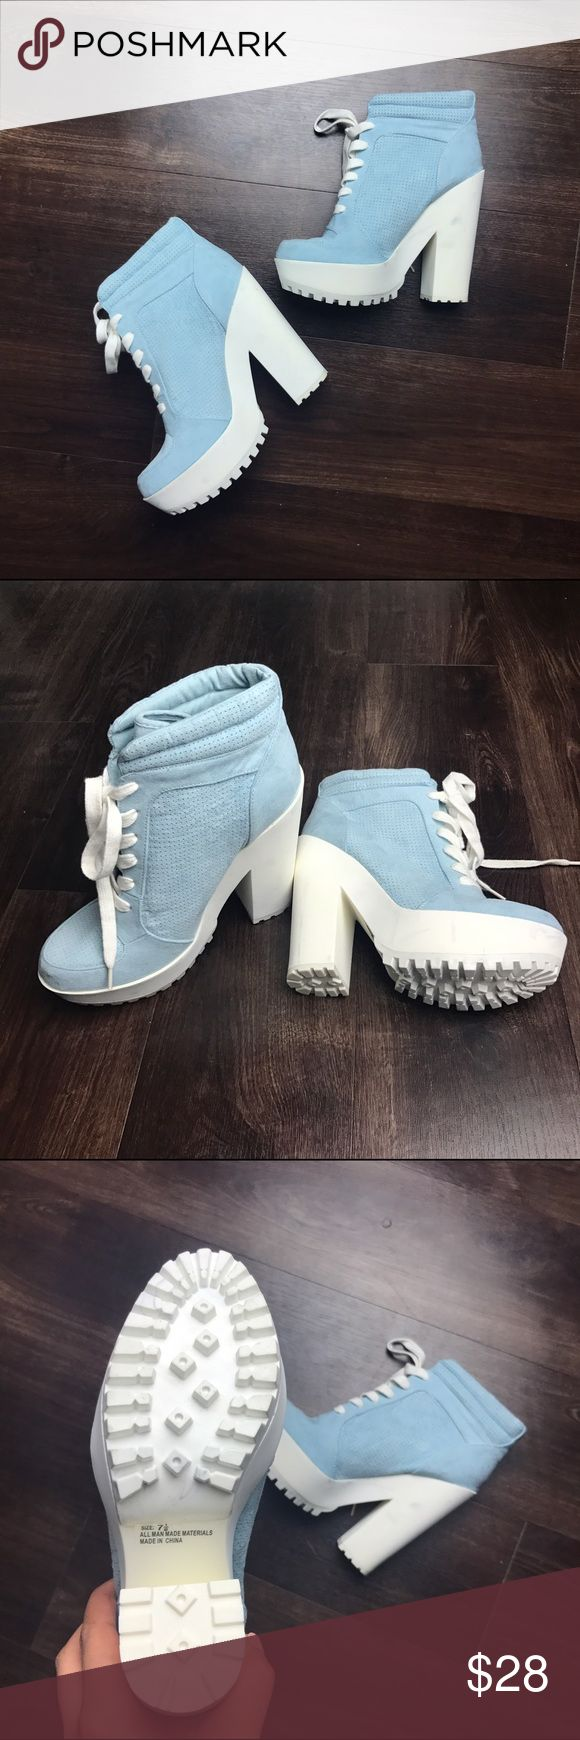 Platform Athletic Sneaker Boots baby blue/white platform sneaker boots Shoes Heeled Boots